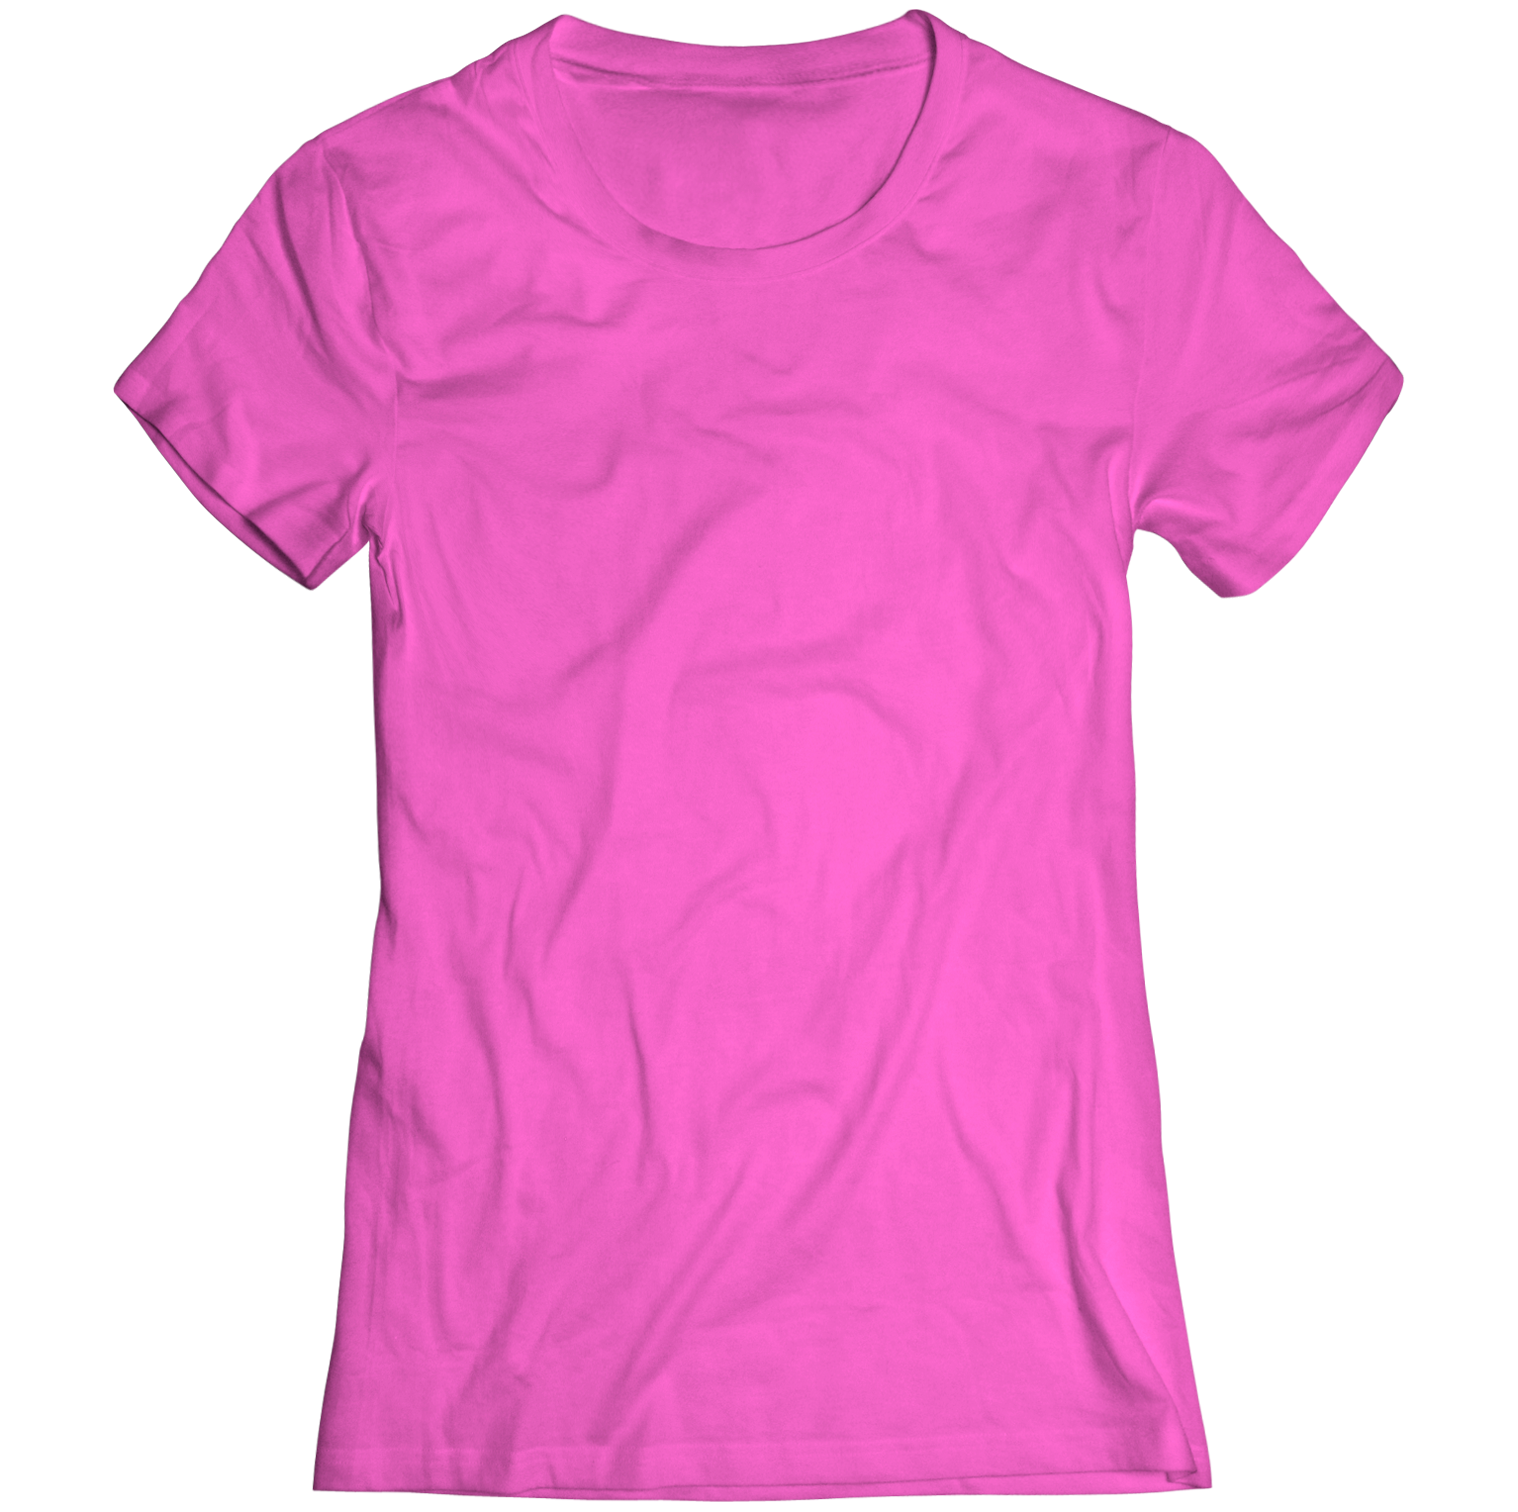 An image of a pink t-shirt